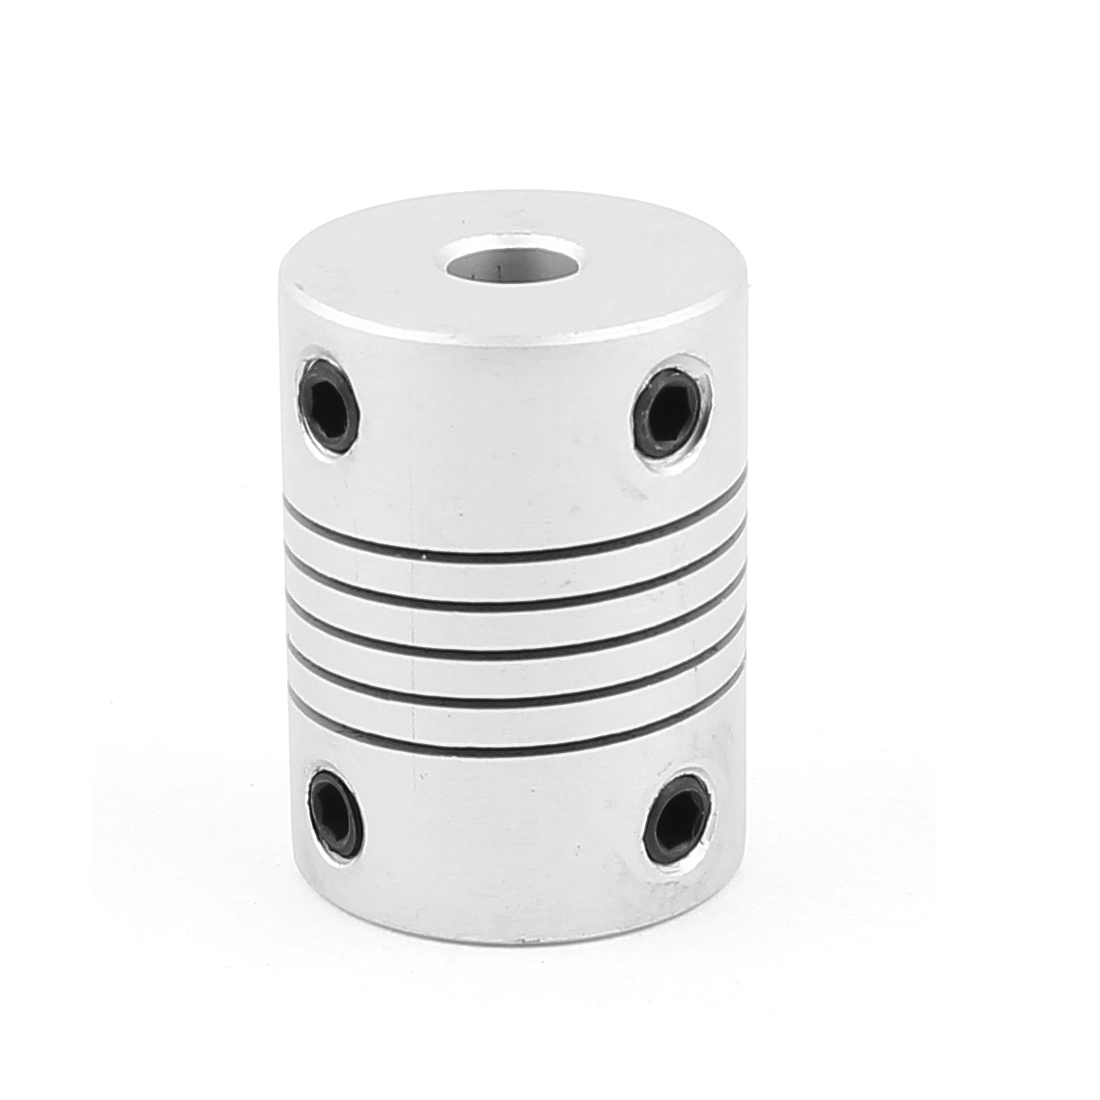 5mm to 5mm Aluminium Alloy Encode Beam Coupling Joint DIY Motor Shaft Adapter